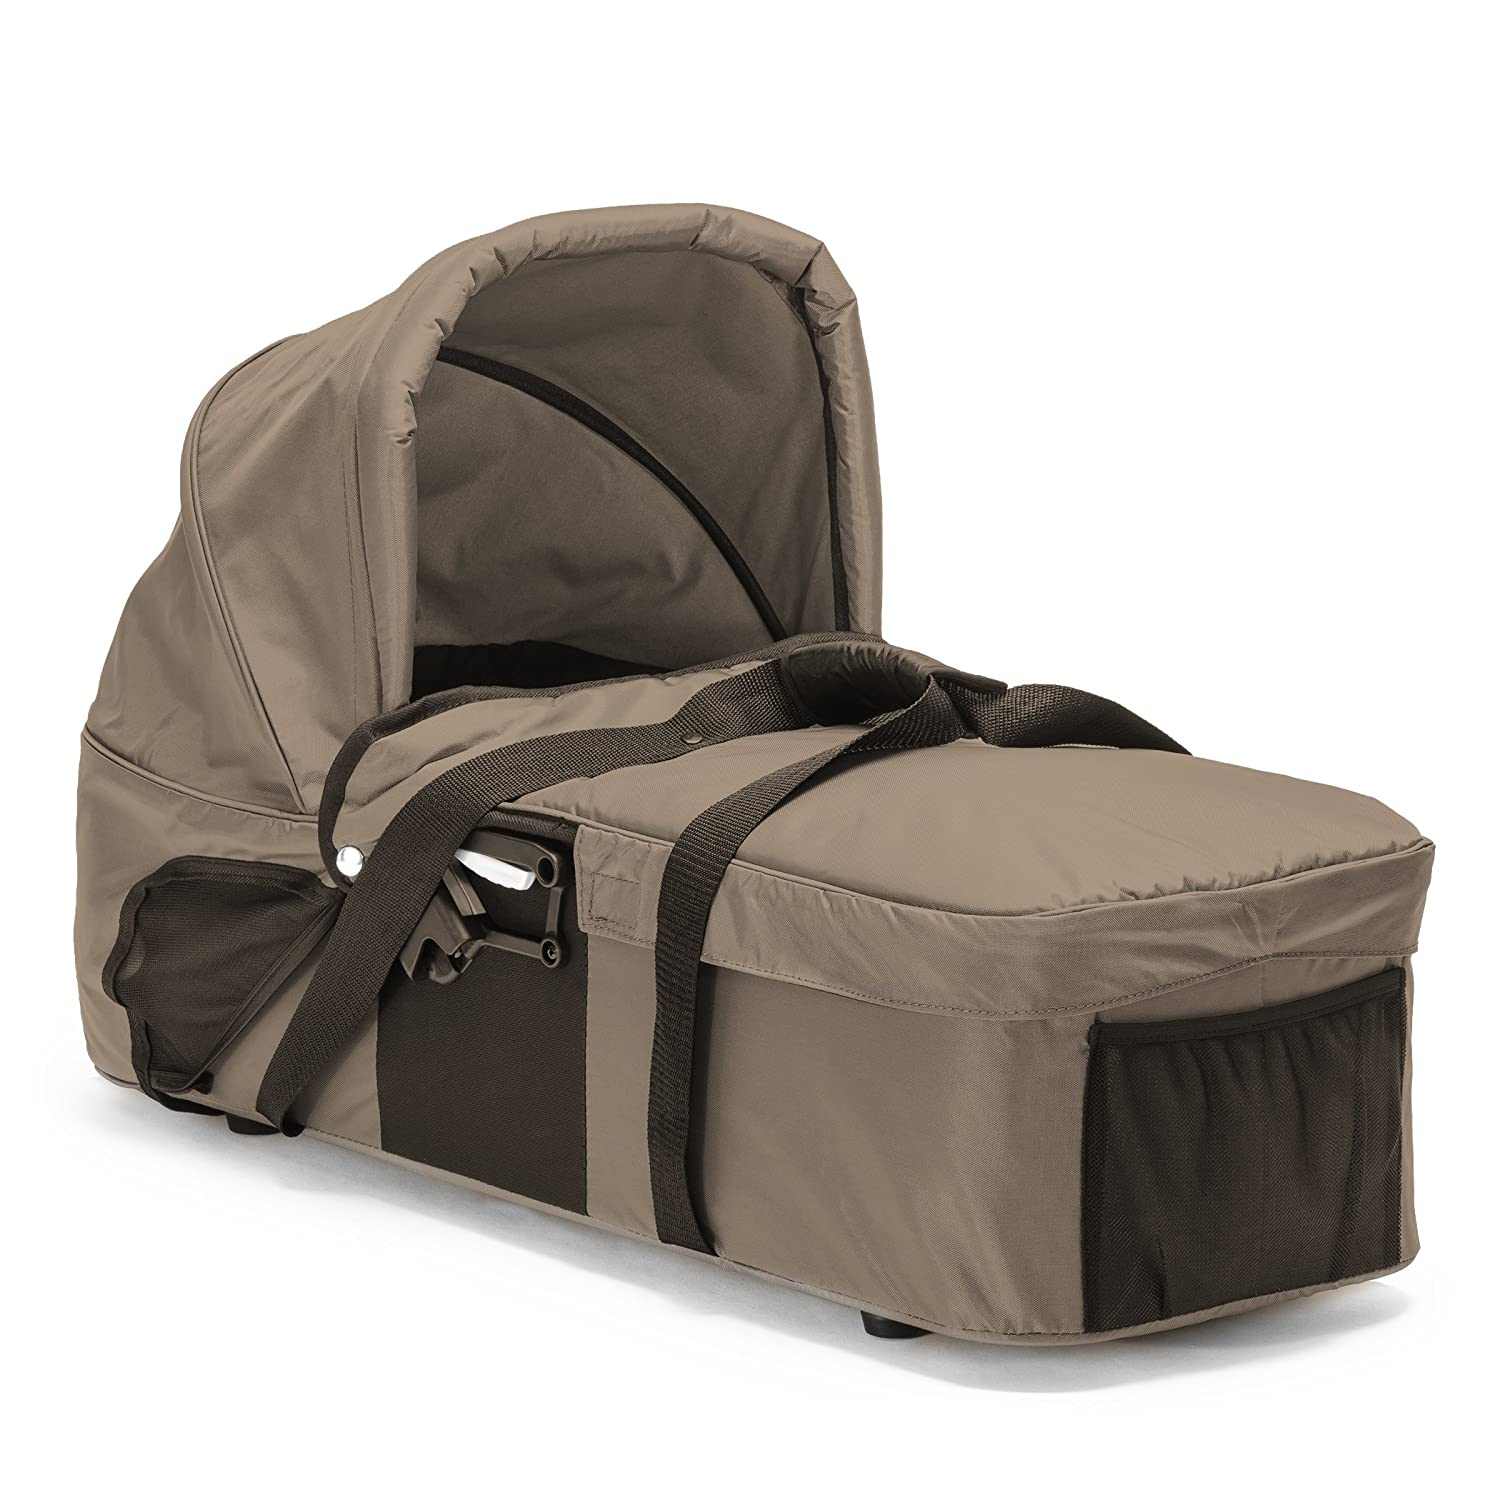 Baby Jogger Compact Carrycot Sand 11-26-006